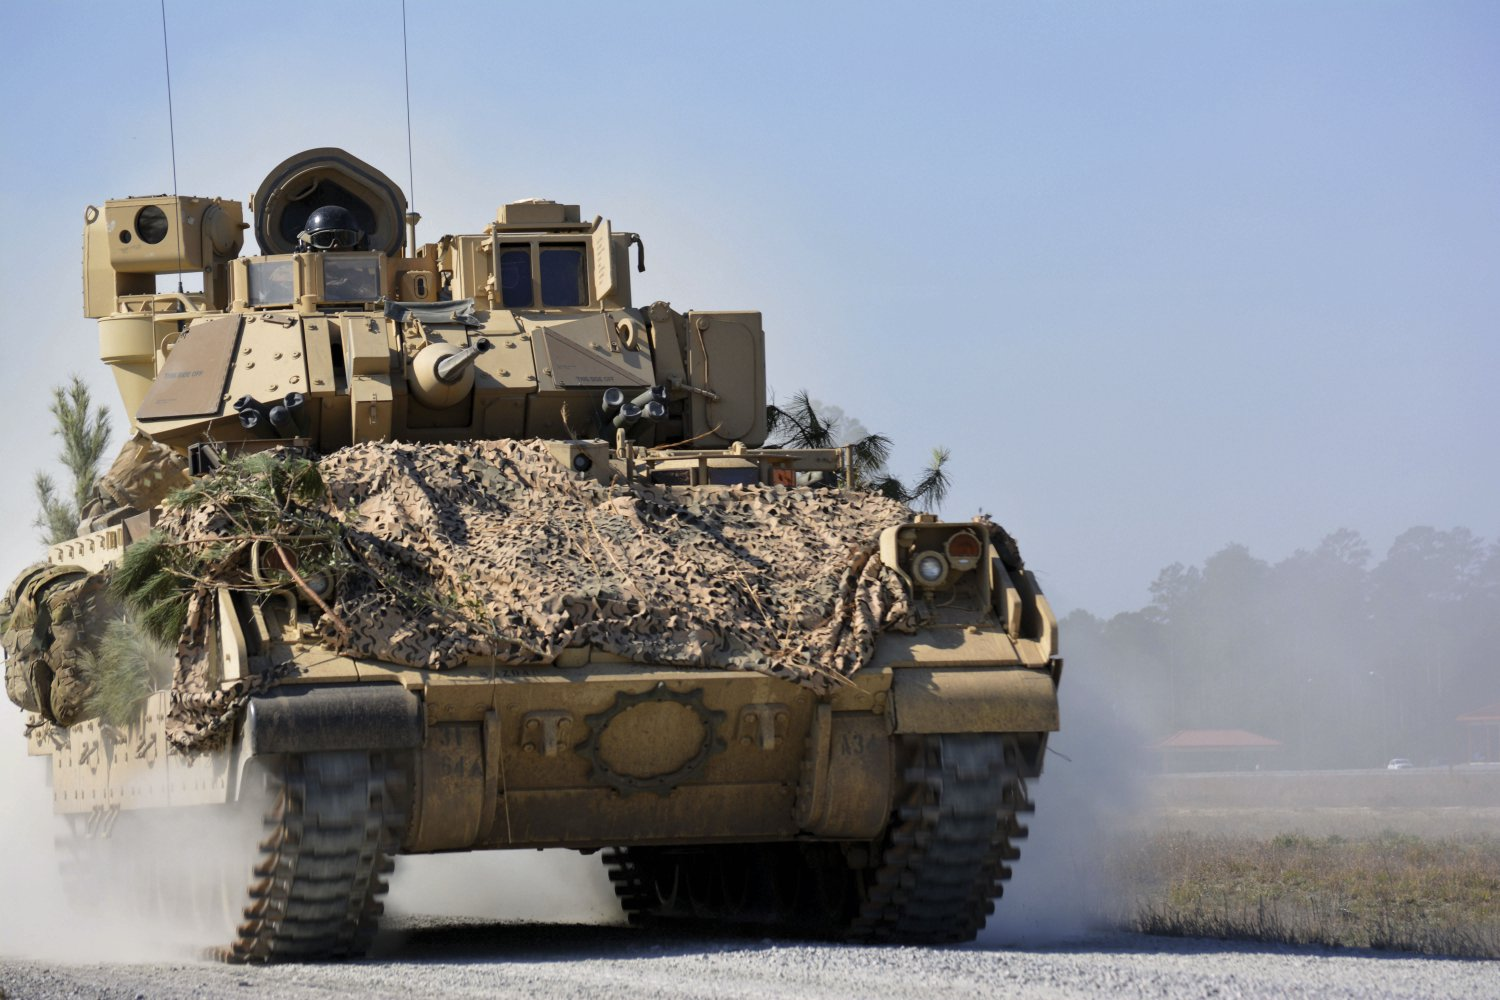 An M2A3 Bradley Fighting Vehicle from 1st Battalion, 64th Armor Regiment, manoeuvres during a company combined-arms live-fire exercise at Fort Stewart, Georgia, in February 2017. The US Army has released its RFP for the revamped Bradley replacement effort. (US Army)